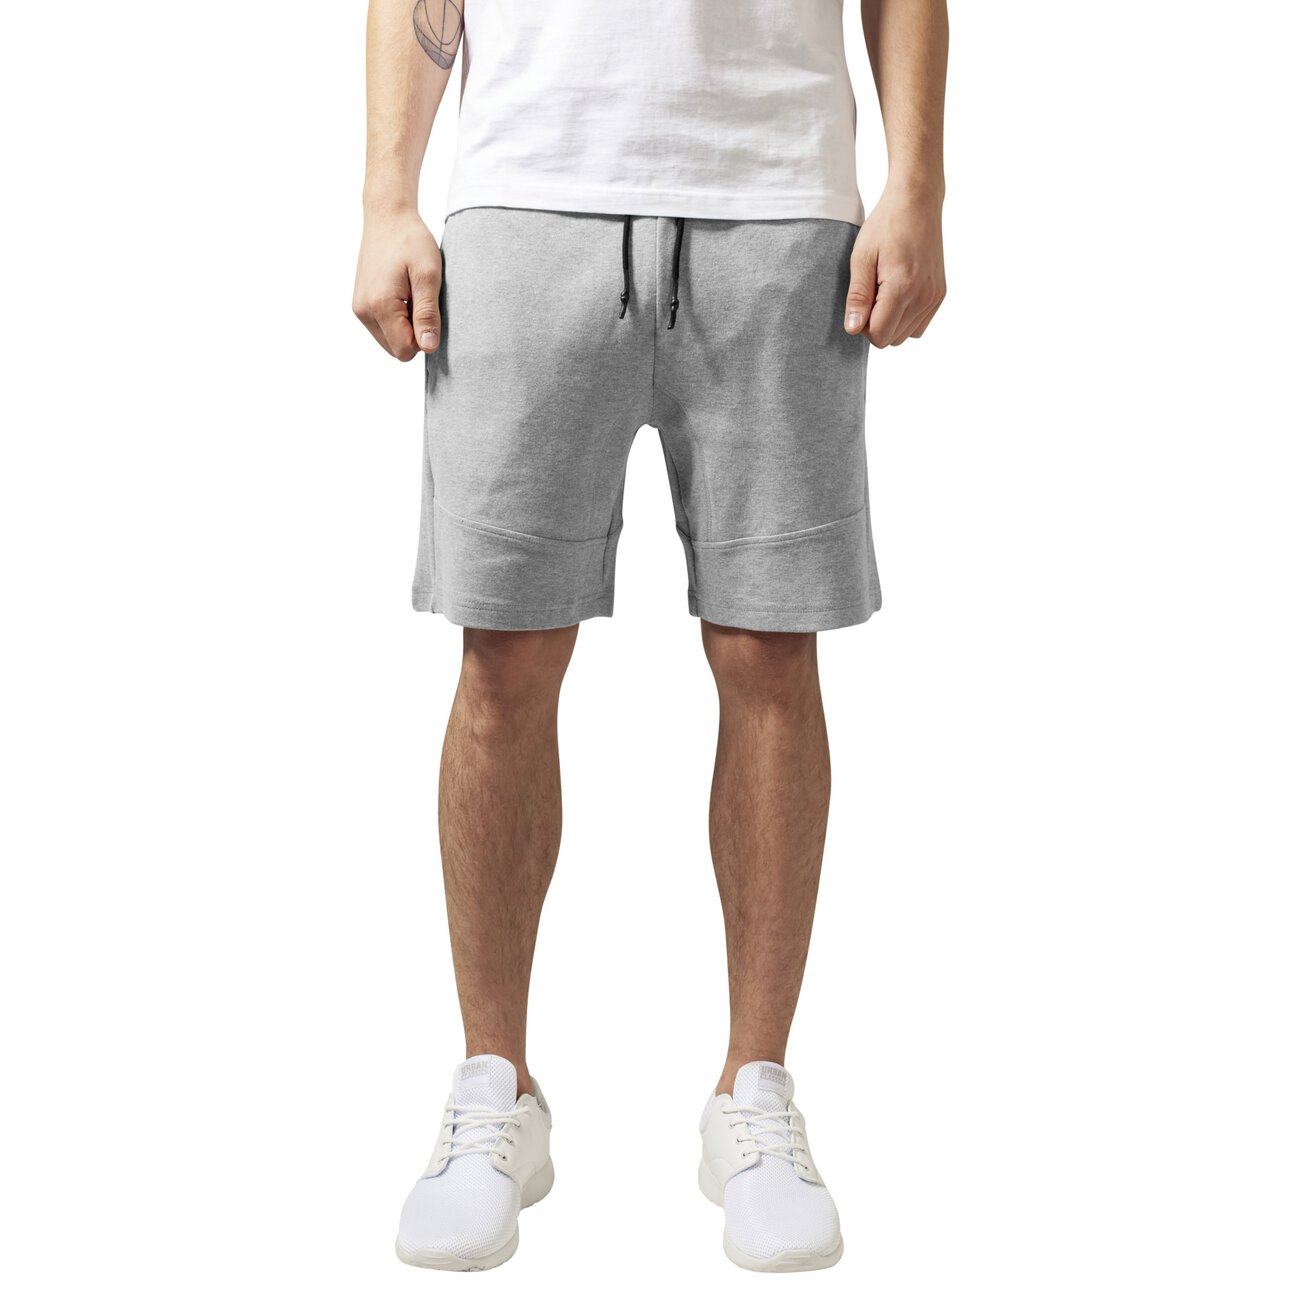 sweatshorts herren urban classics kurze hose interlock freizeithose. Black Bedroom Furniture Sets. Home Design Ideas